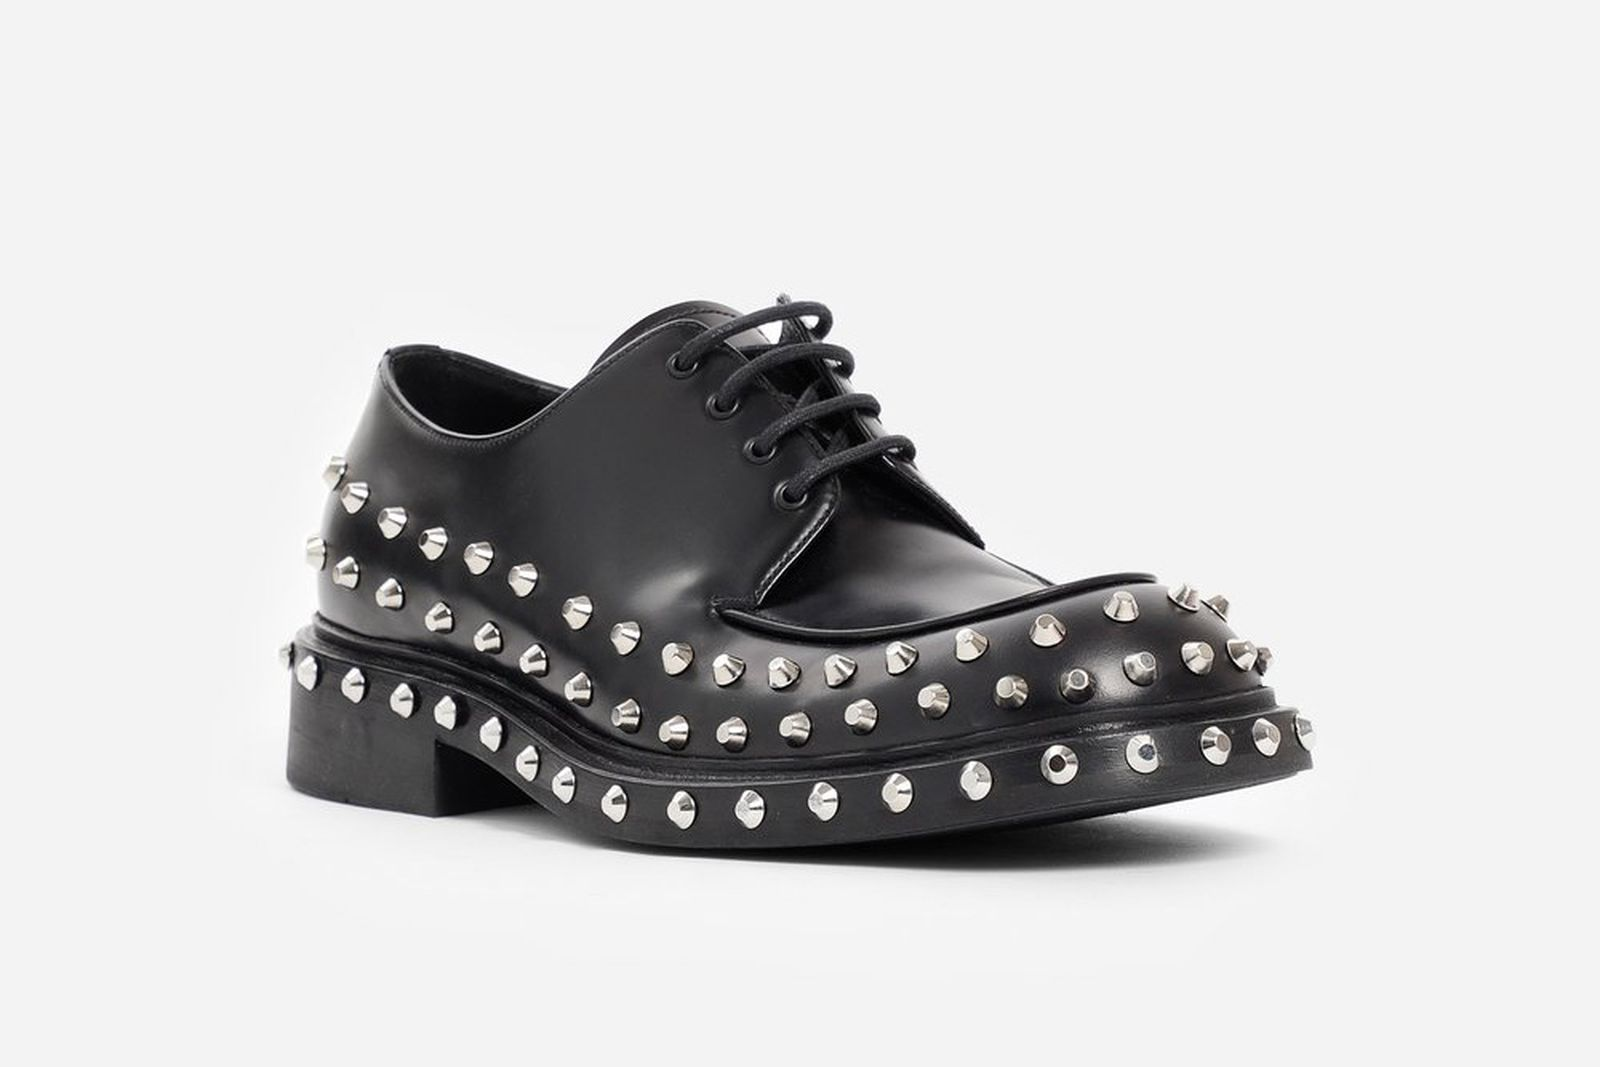 prada black studded derby shoes release date price